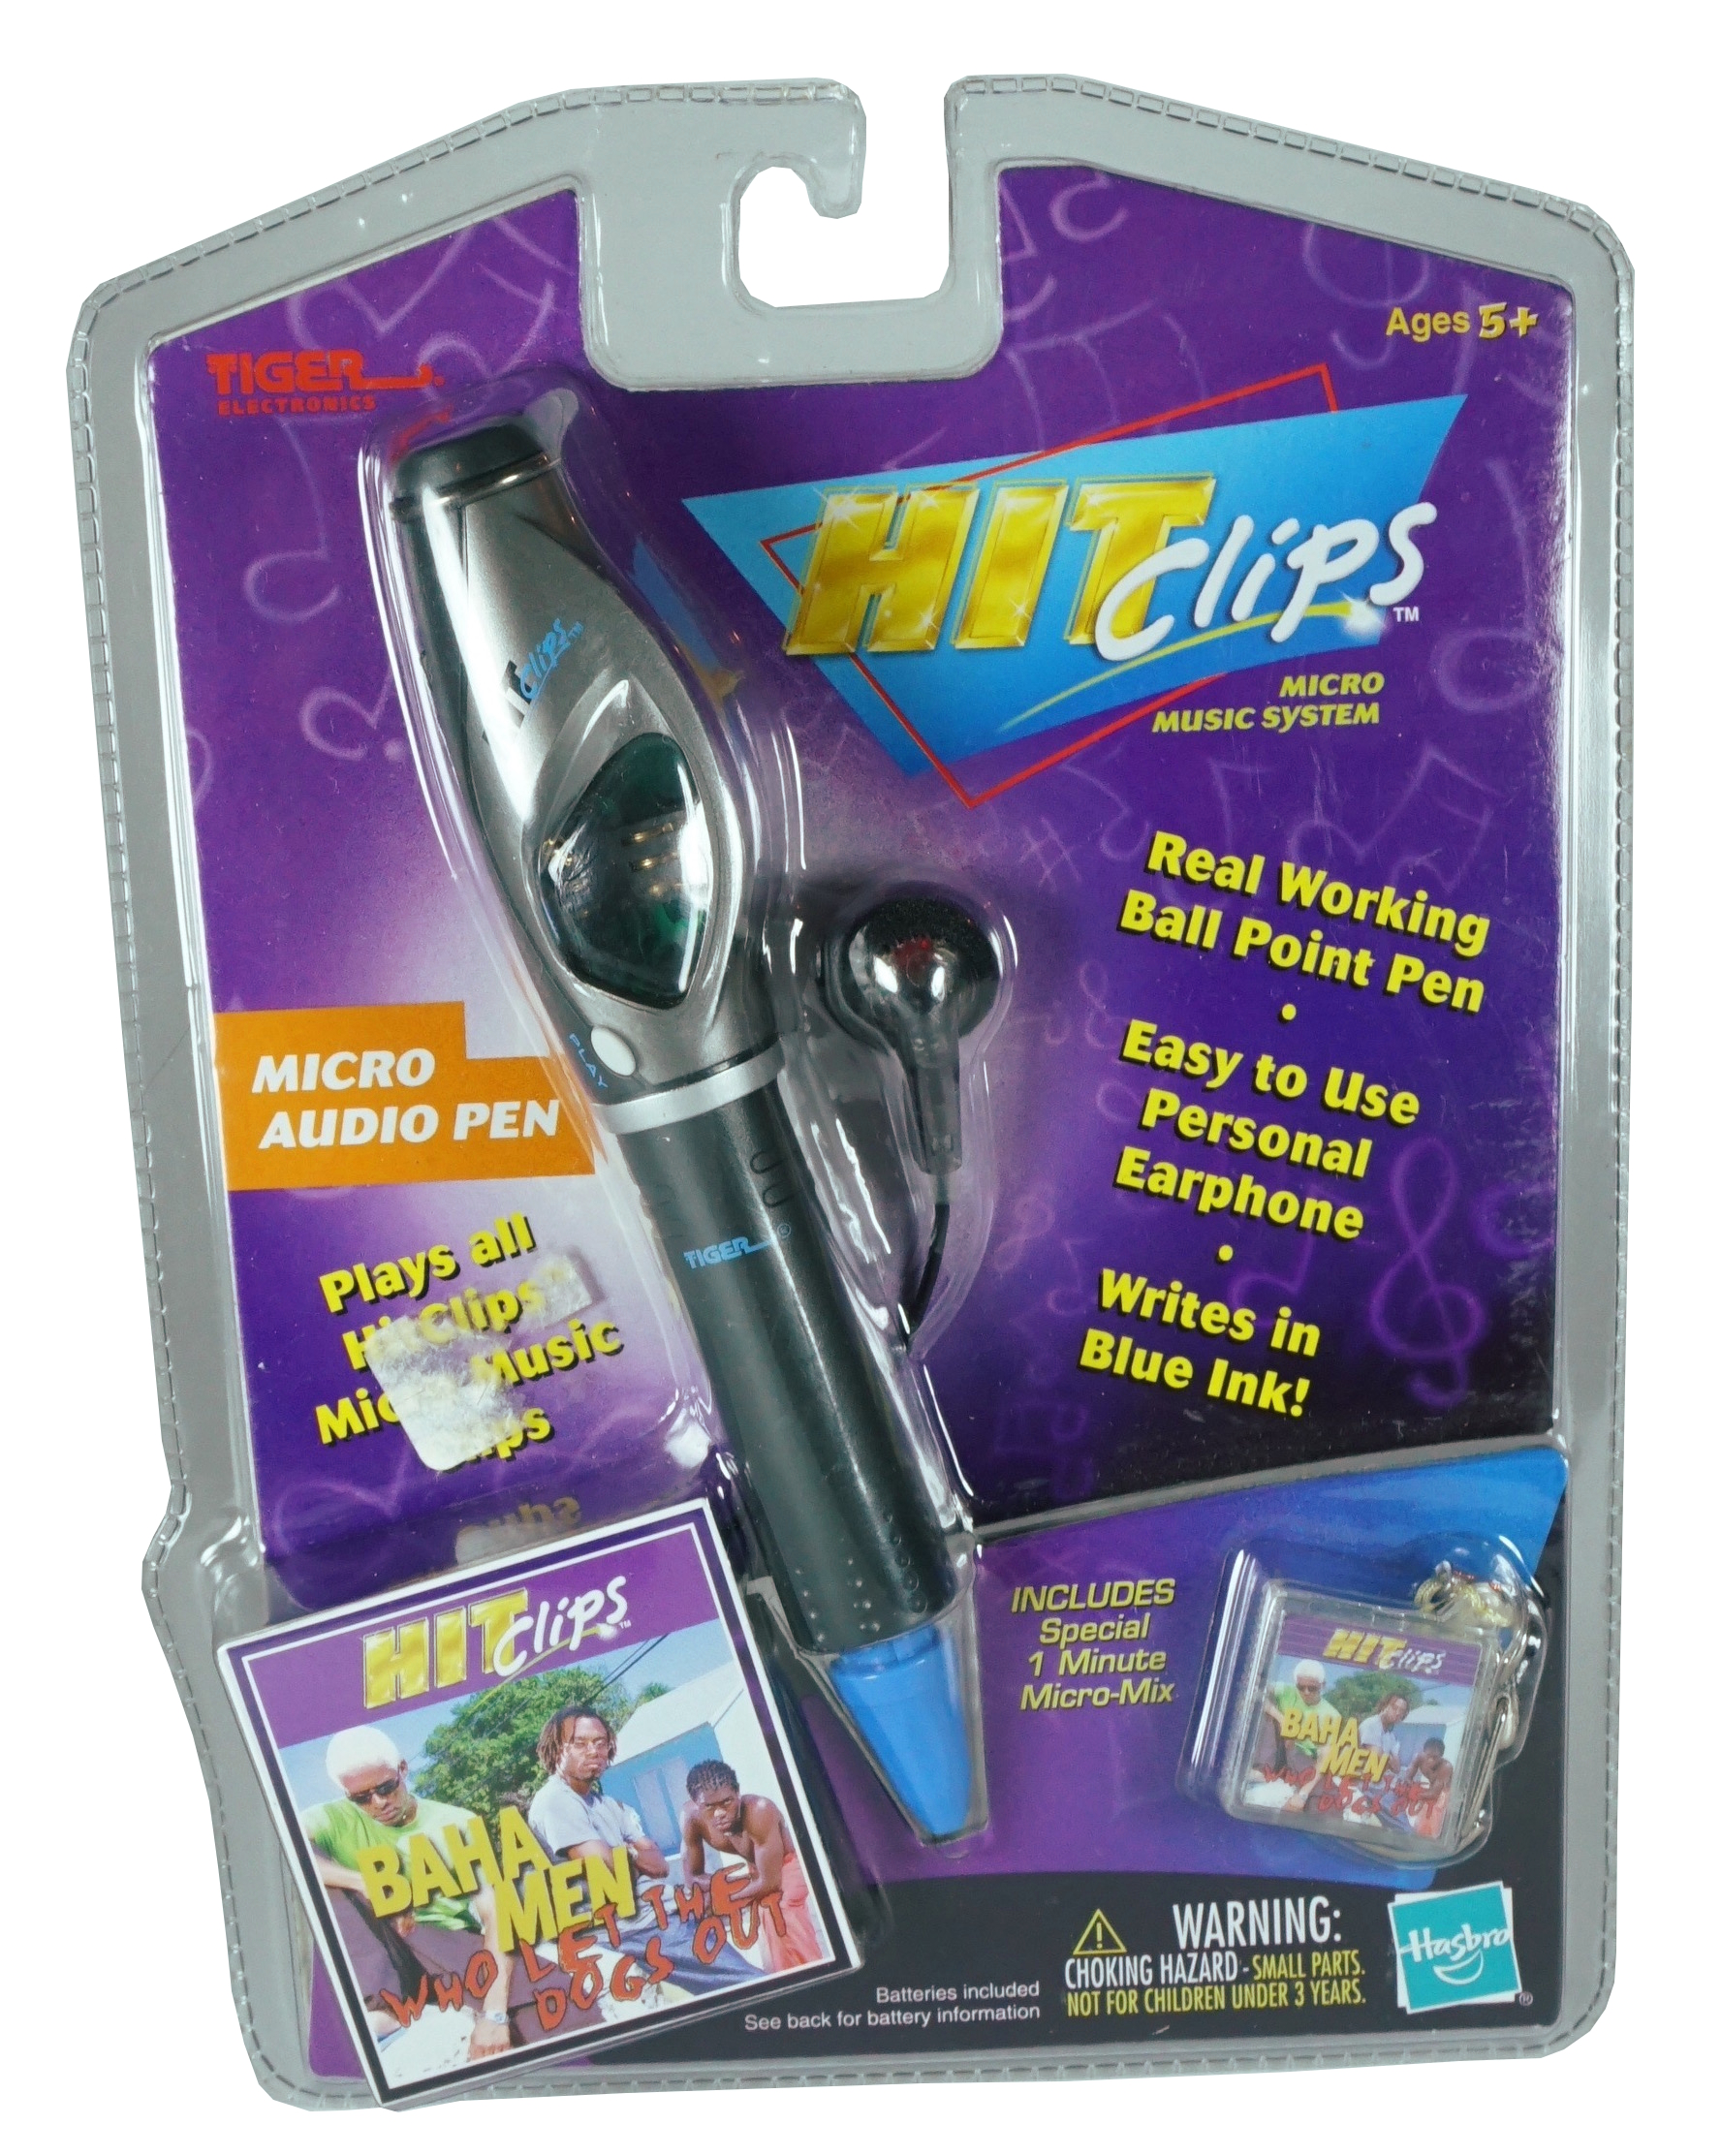 WLWLTDOO-2001-TOY-TIGER_HIT_CLIPS-PEN-FRONT.jpg